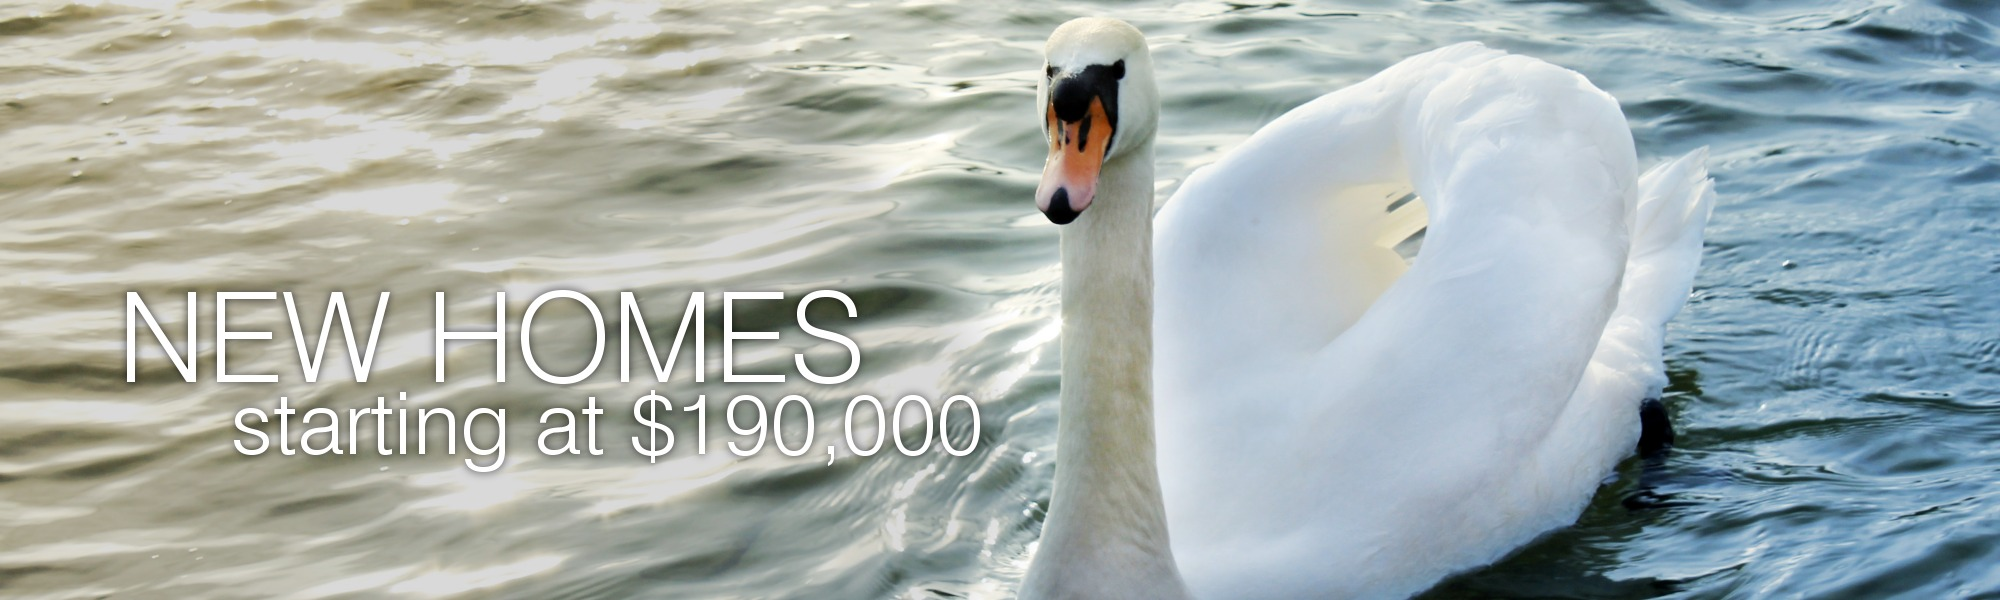 5 Open House Models To View